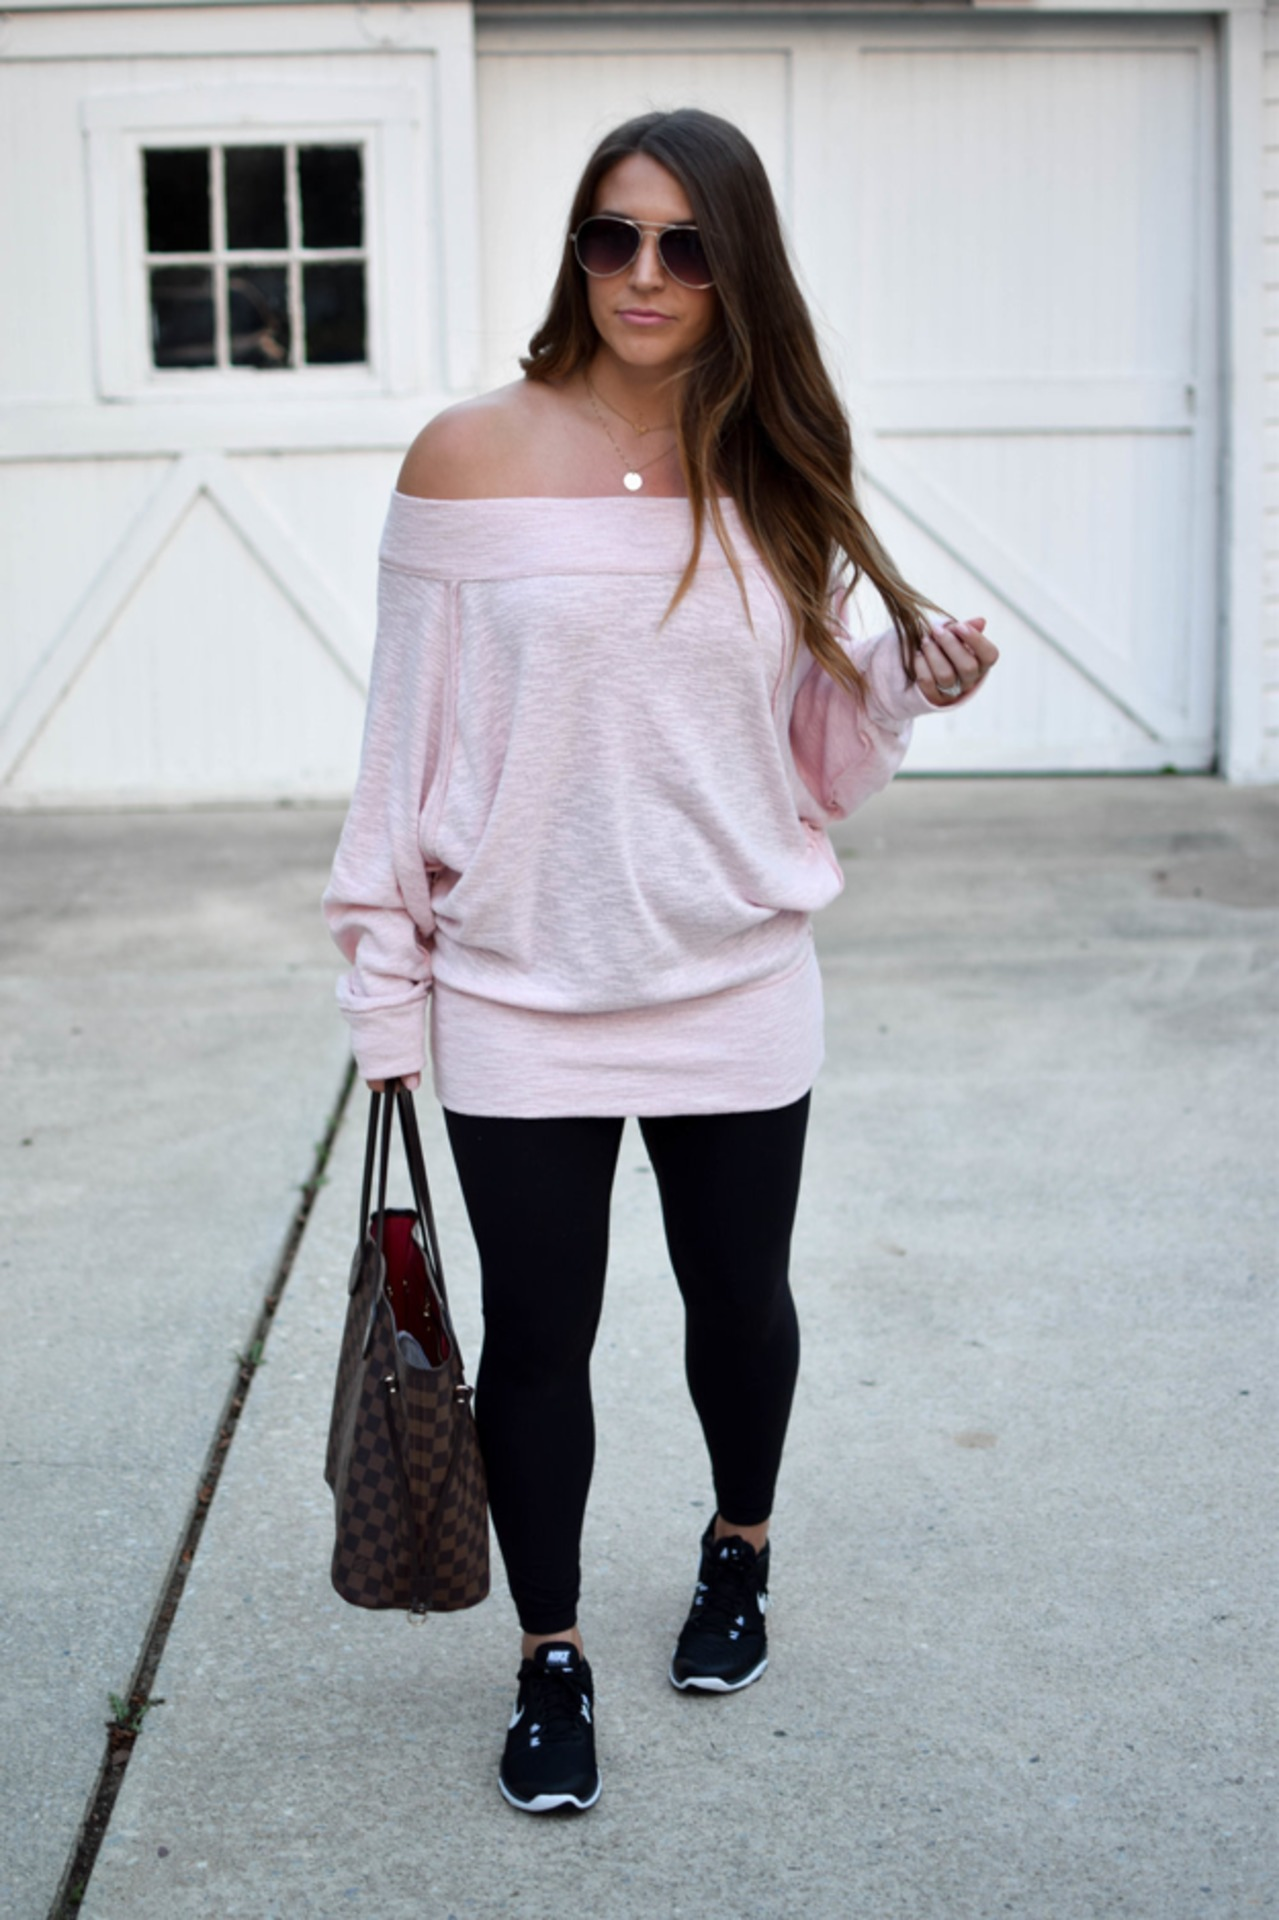 _Girlinskinnyfit_ - pink+off+shoulder+dress